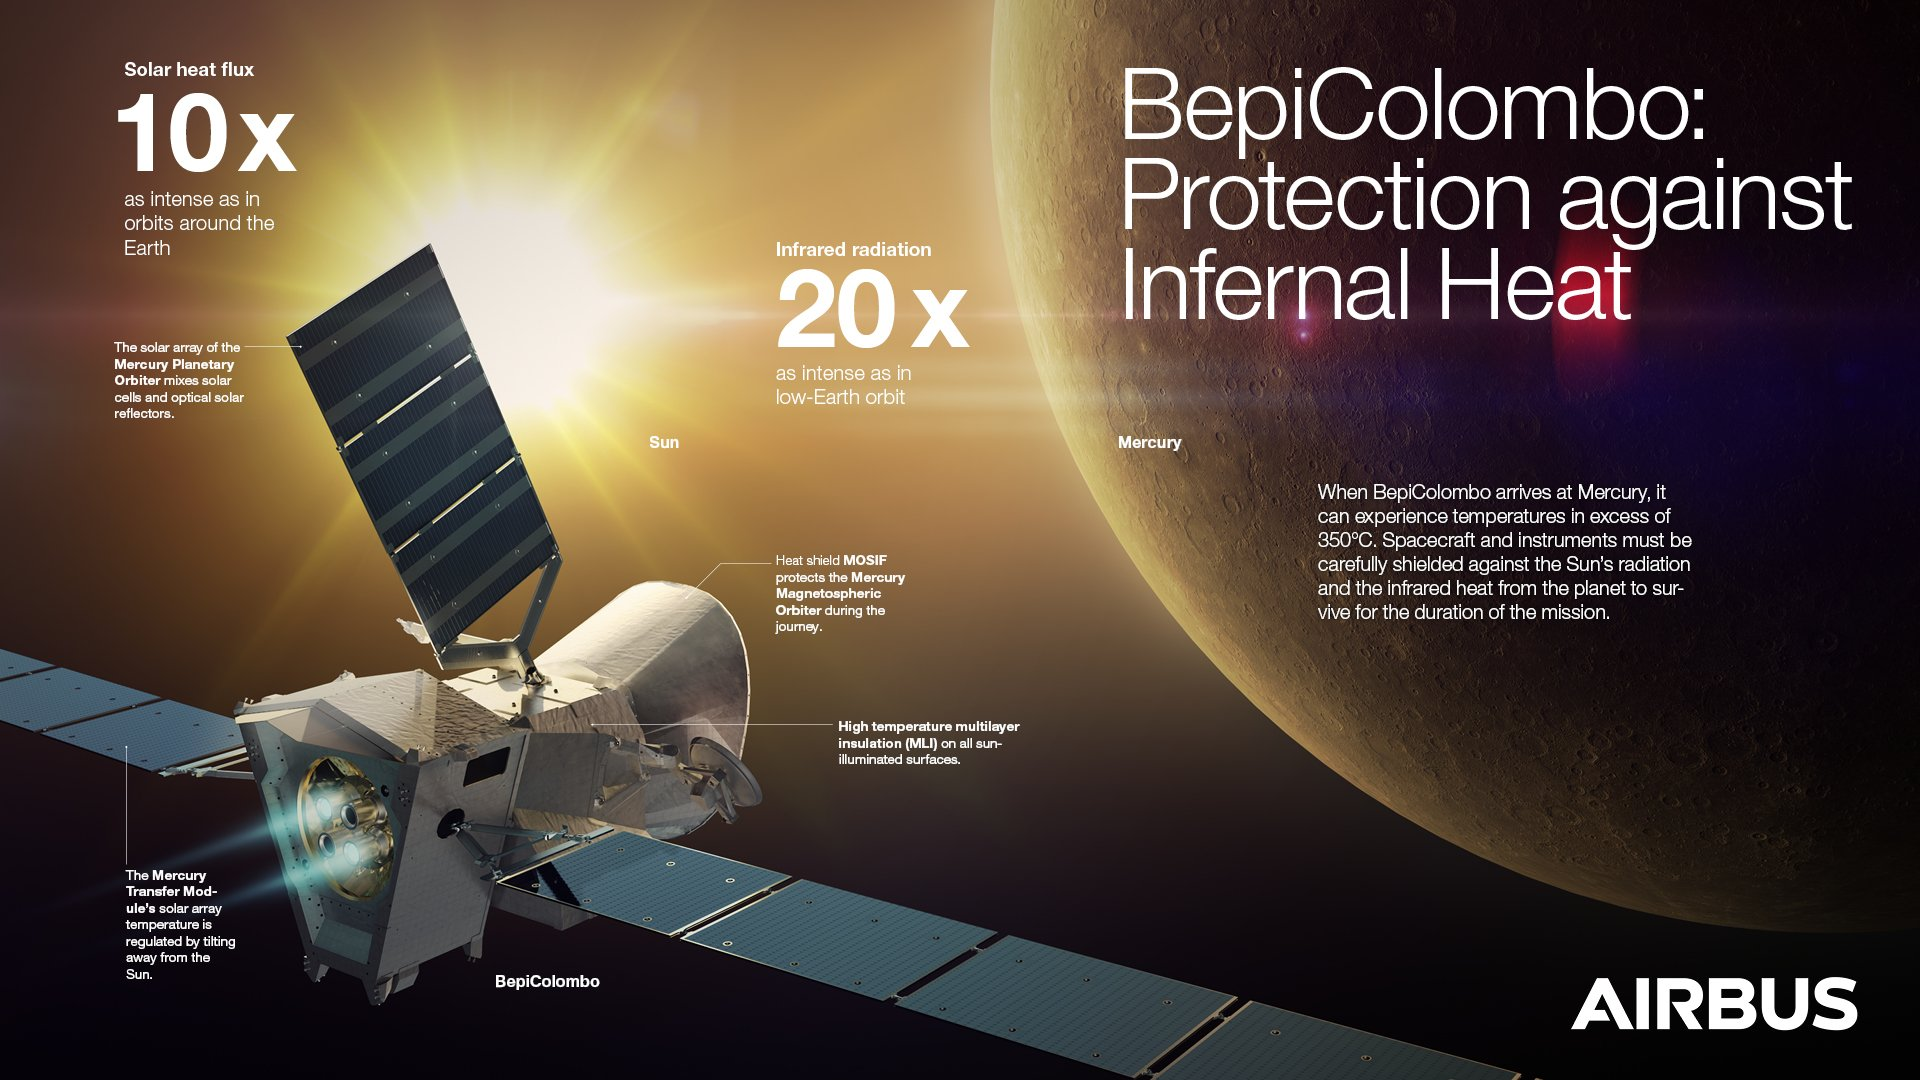 BepiColombo - Protection against infernal heat